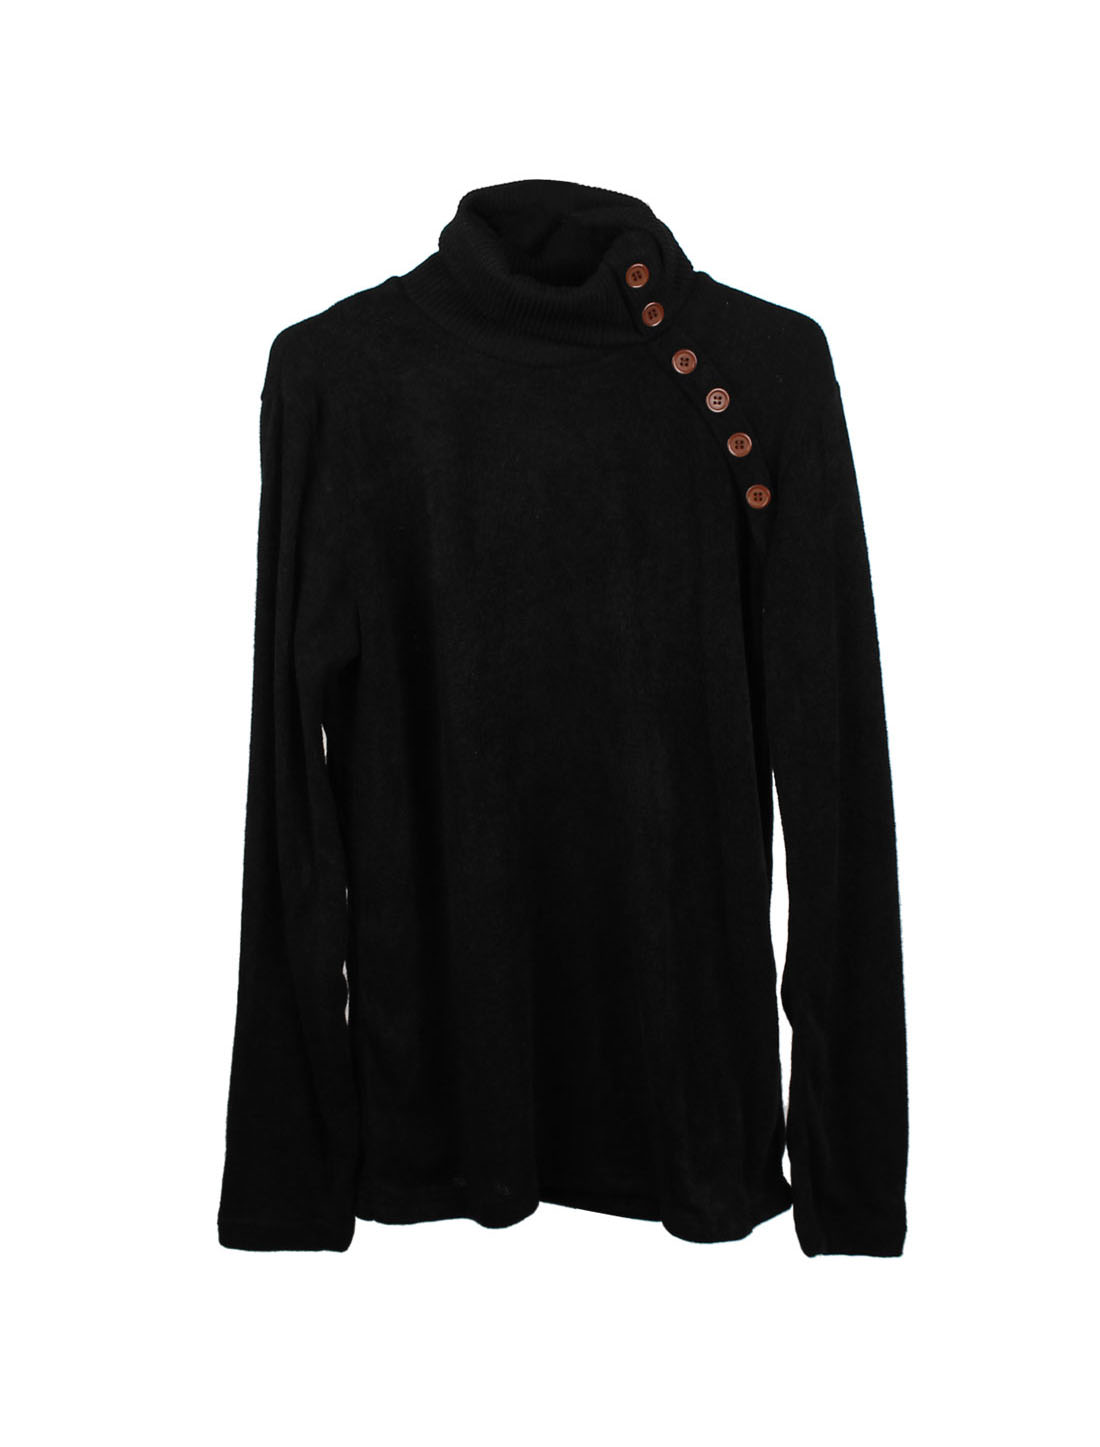 Men Autumn Turtle Neck Long Sleeve Buttons Decor Knit Shirt Black S